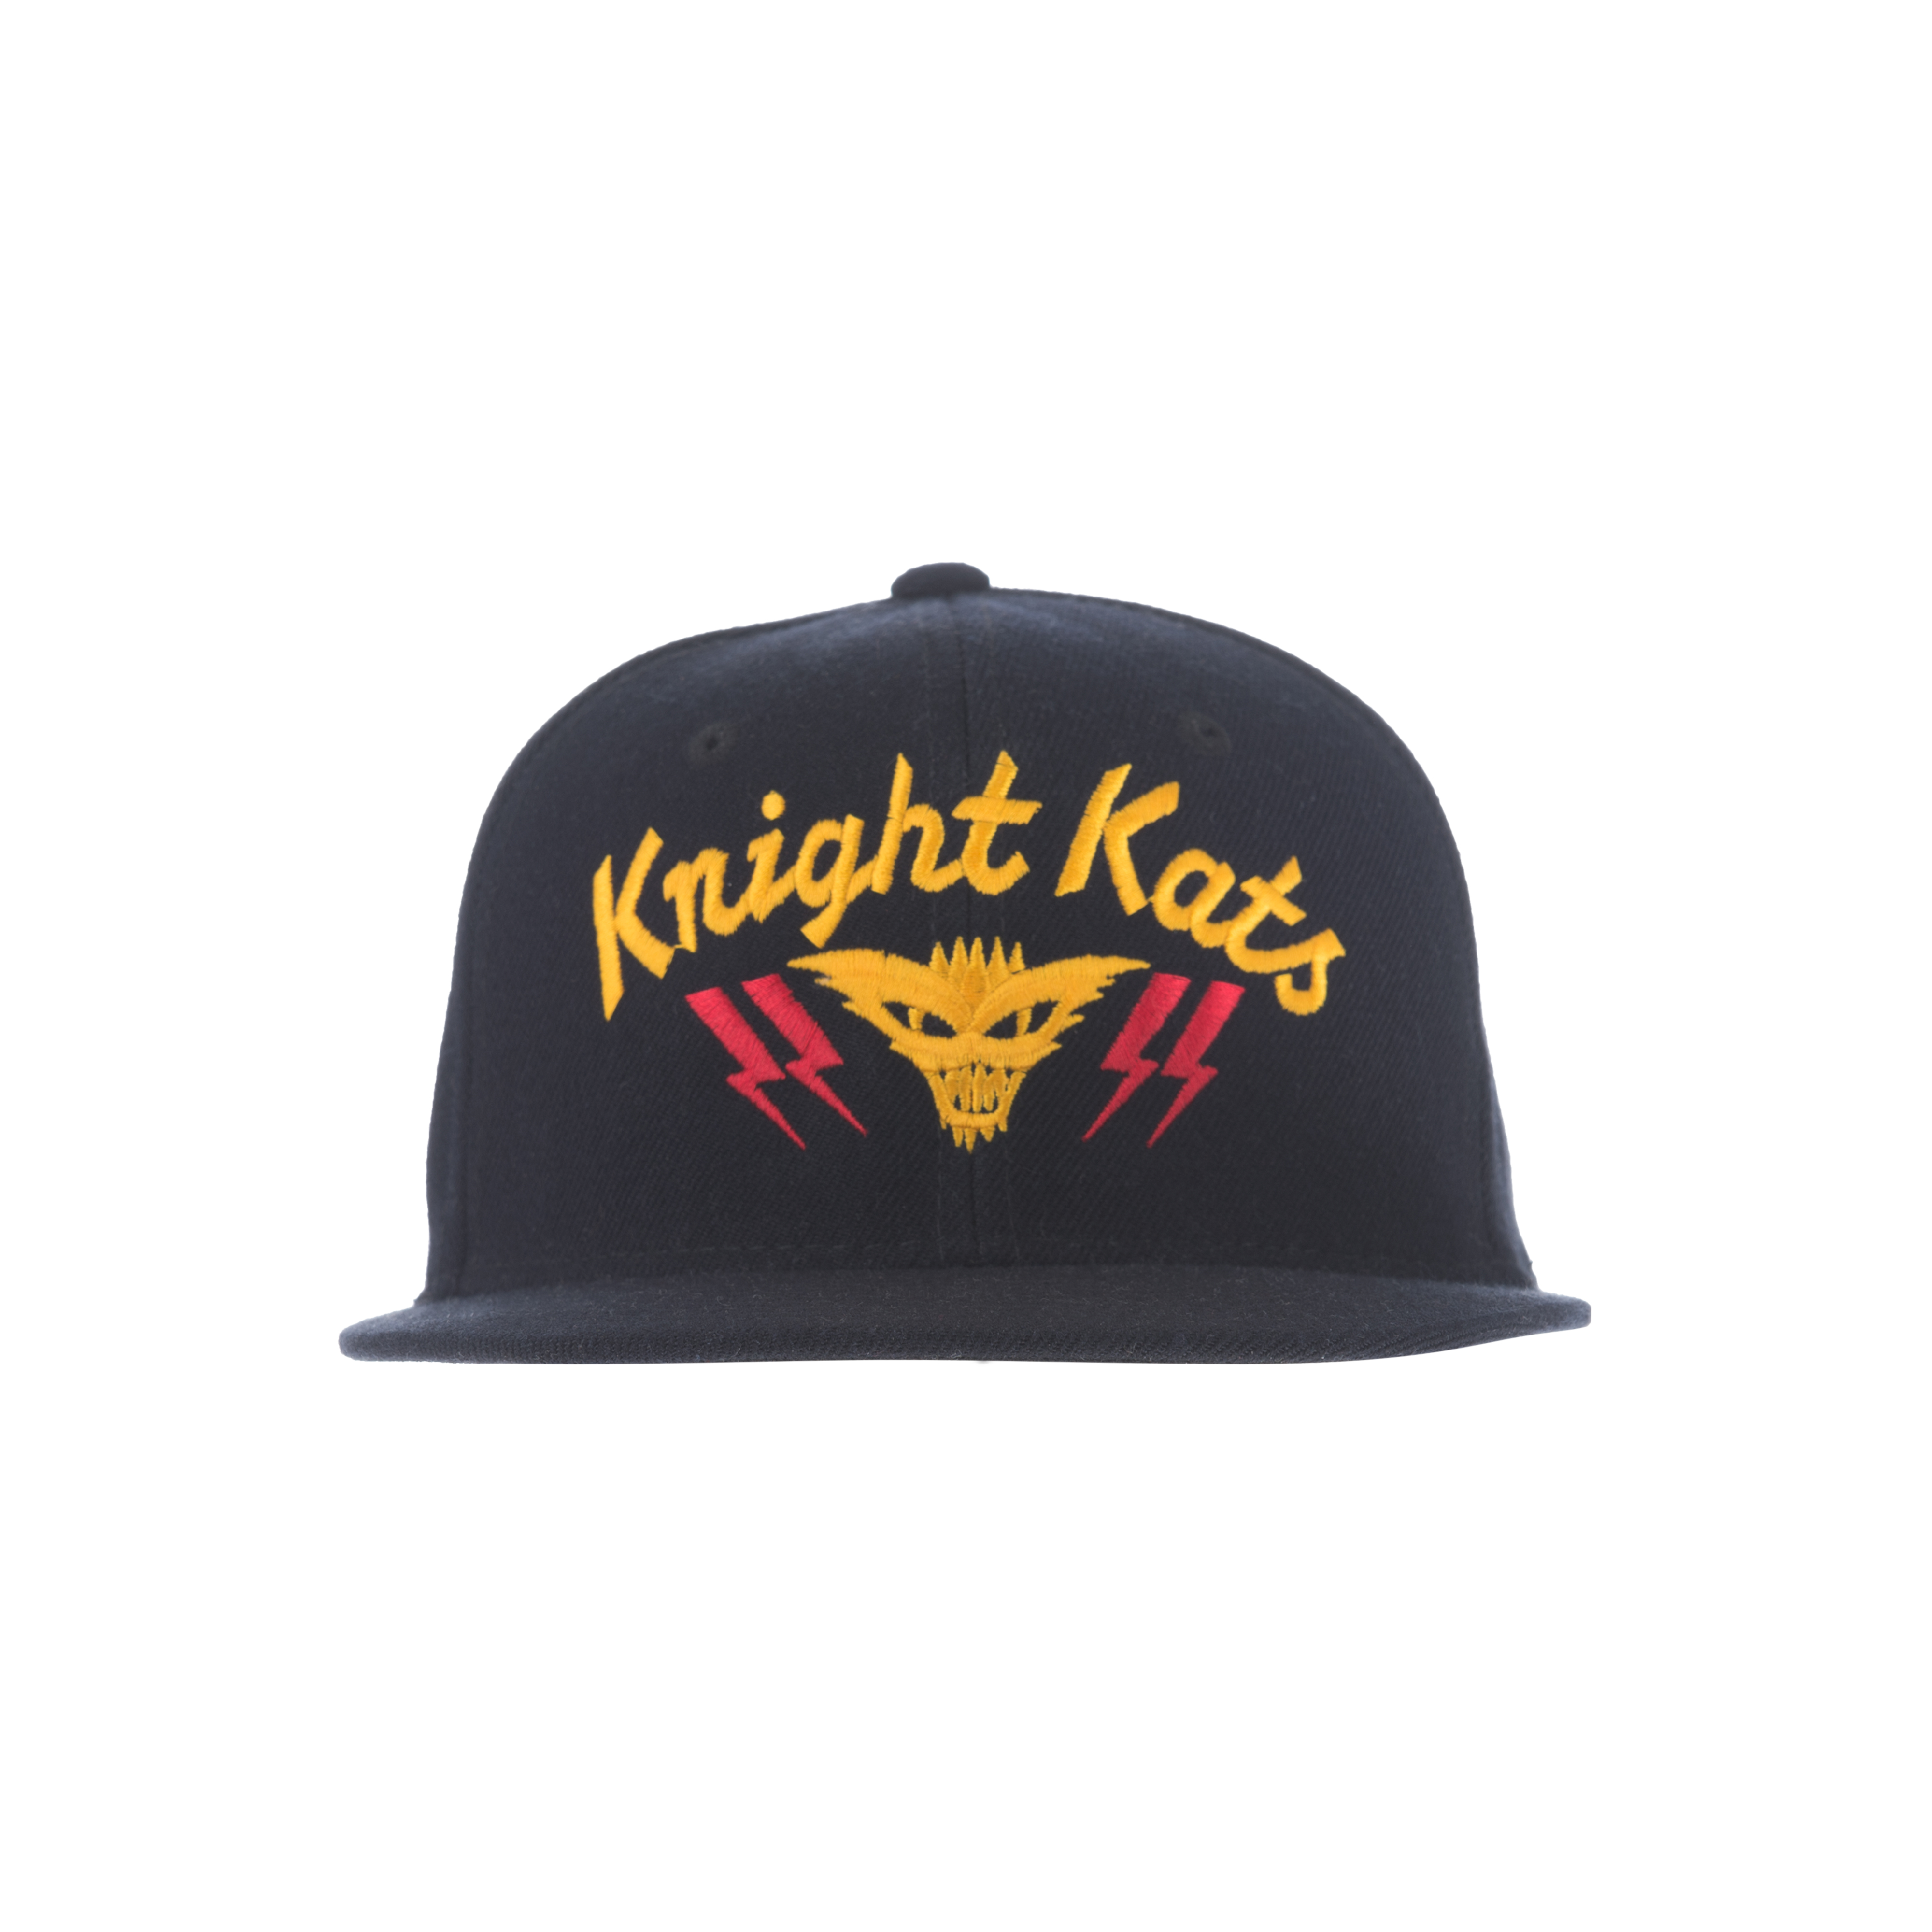 22937c03947 Johnson Motors. Knight Kats Cap